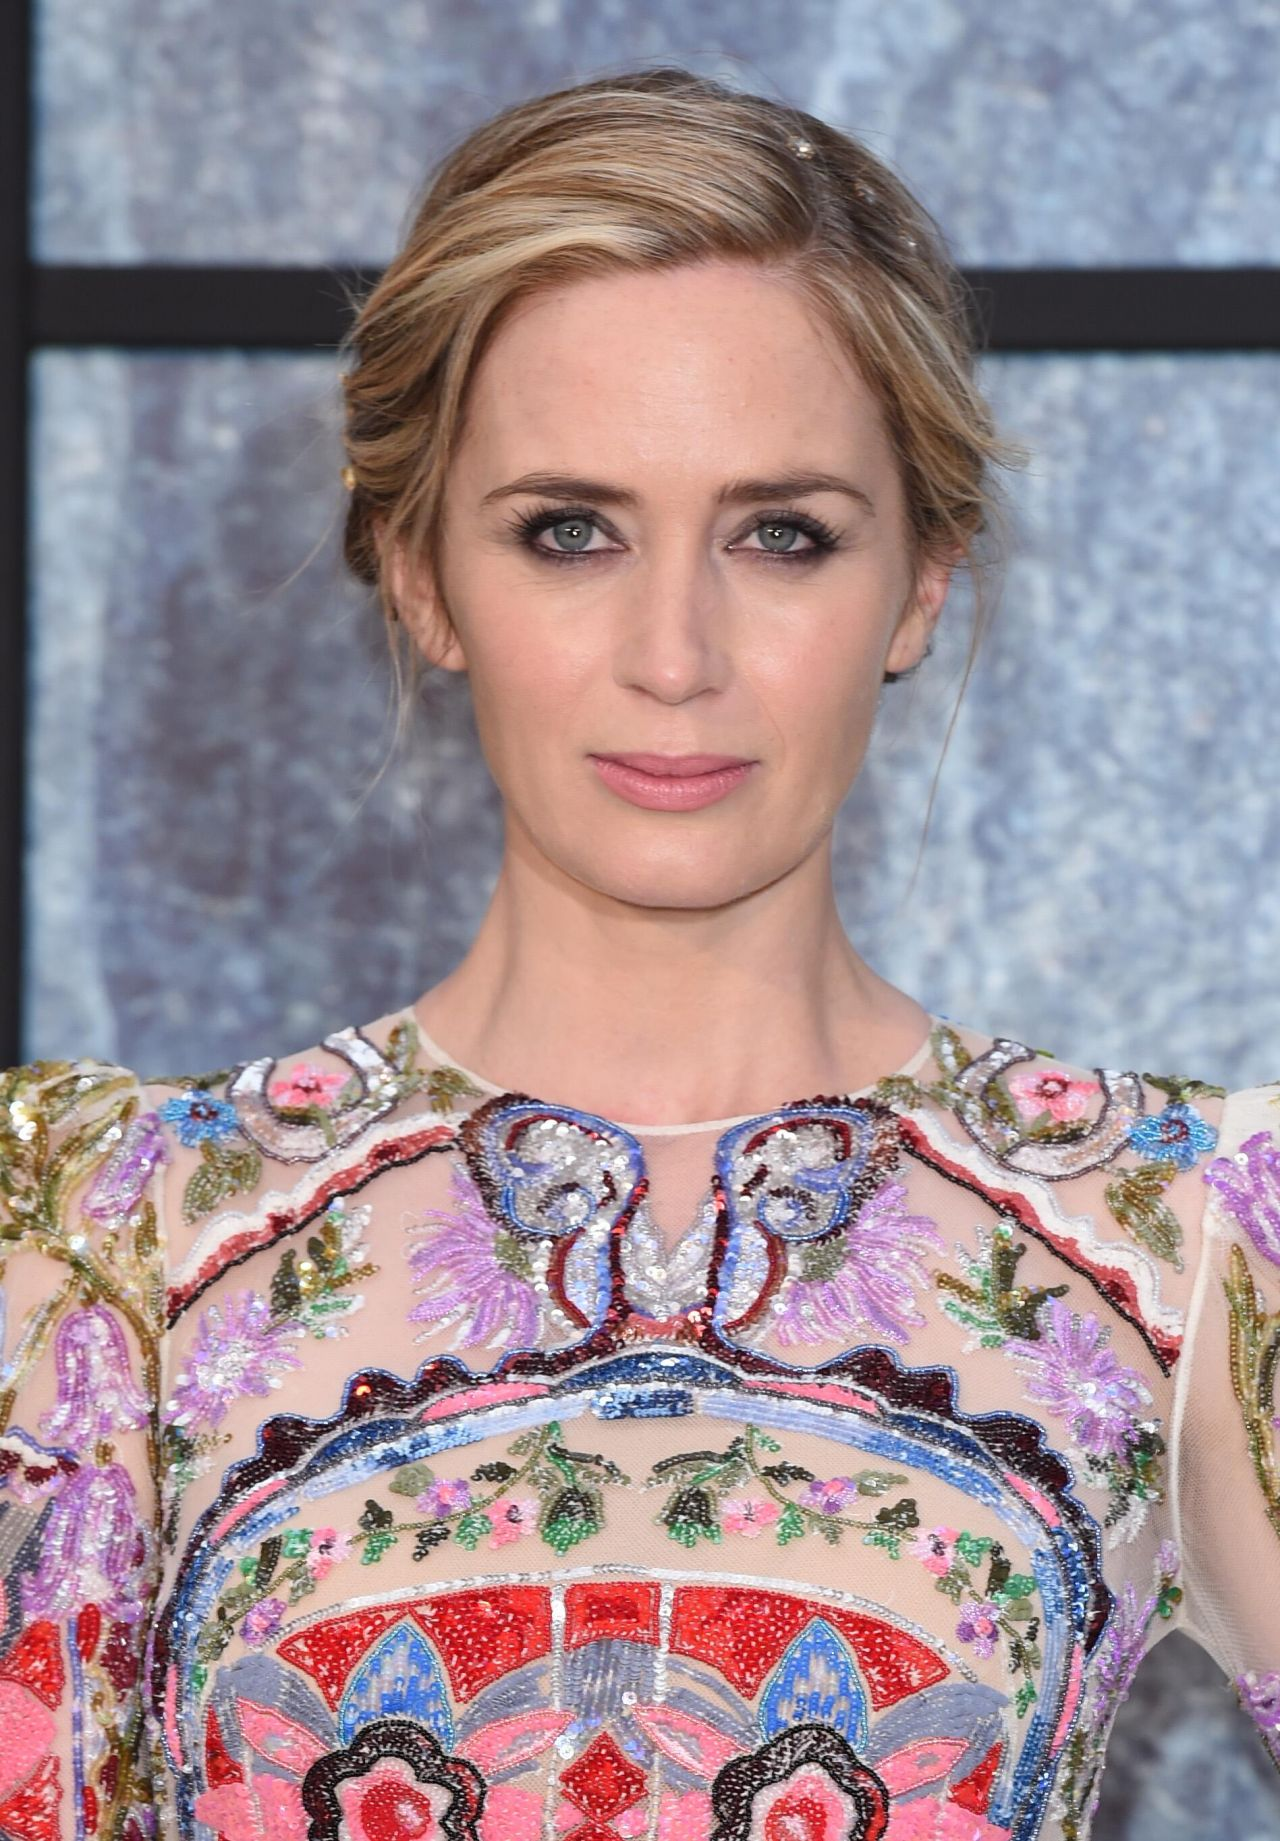 Emily Blunt - 'The Girl on the Train' Premiere in London 9/20/2016 Emily Blunt